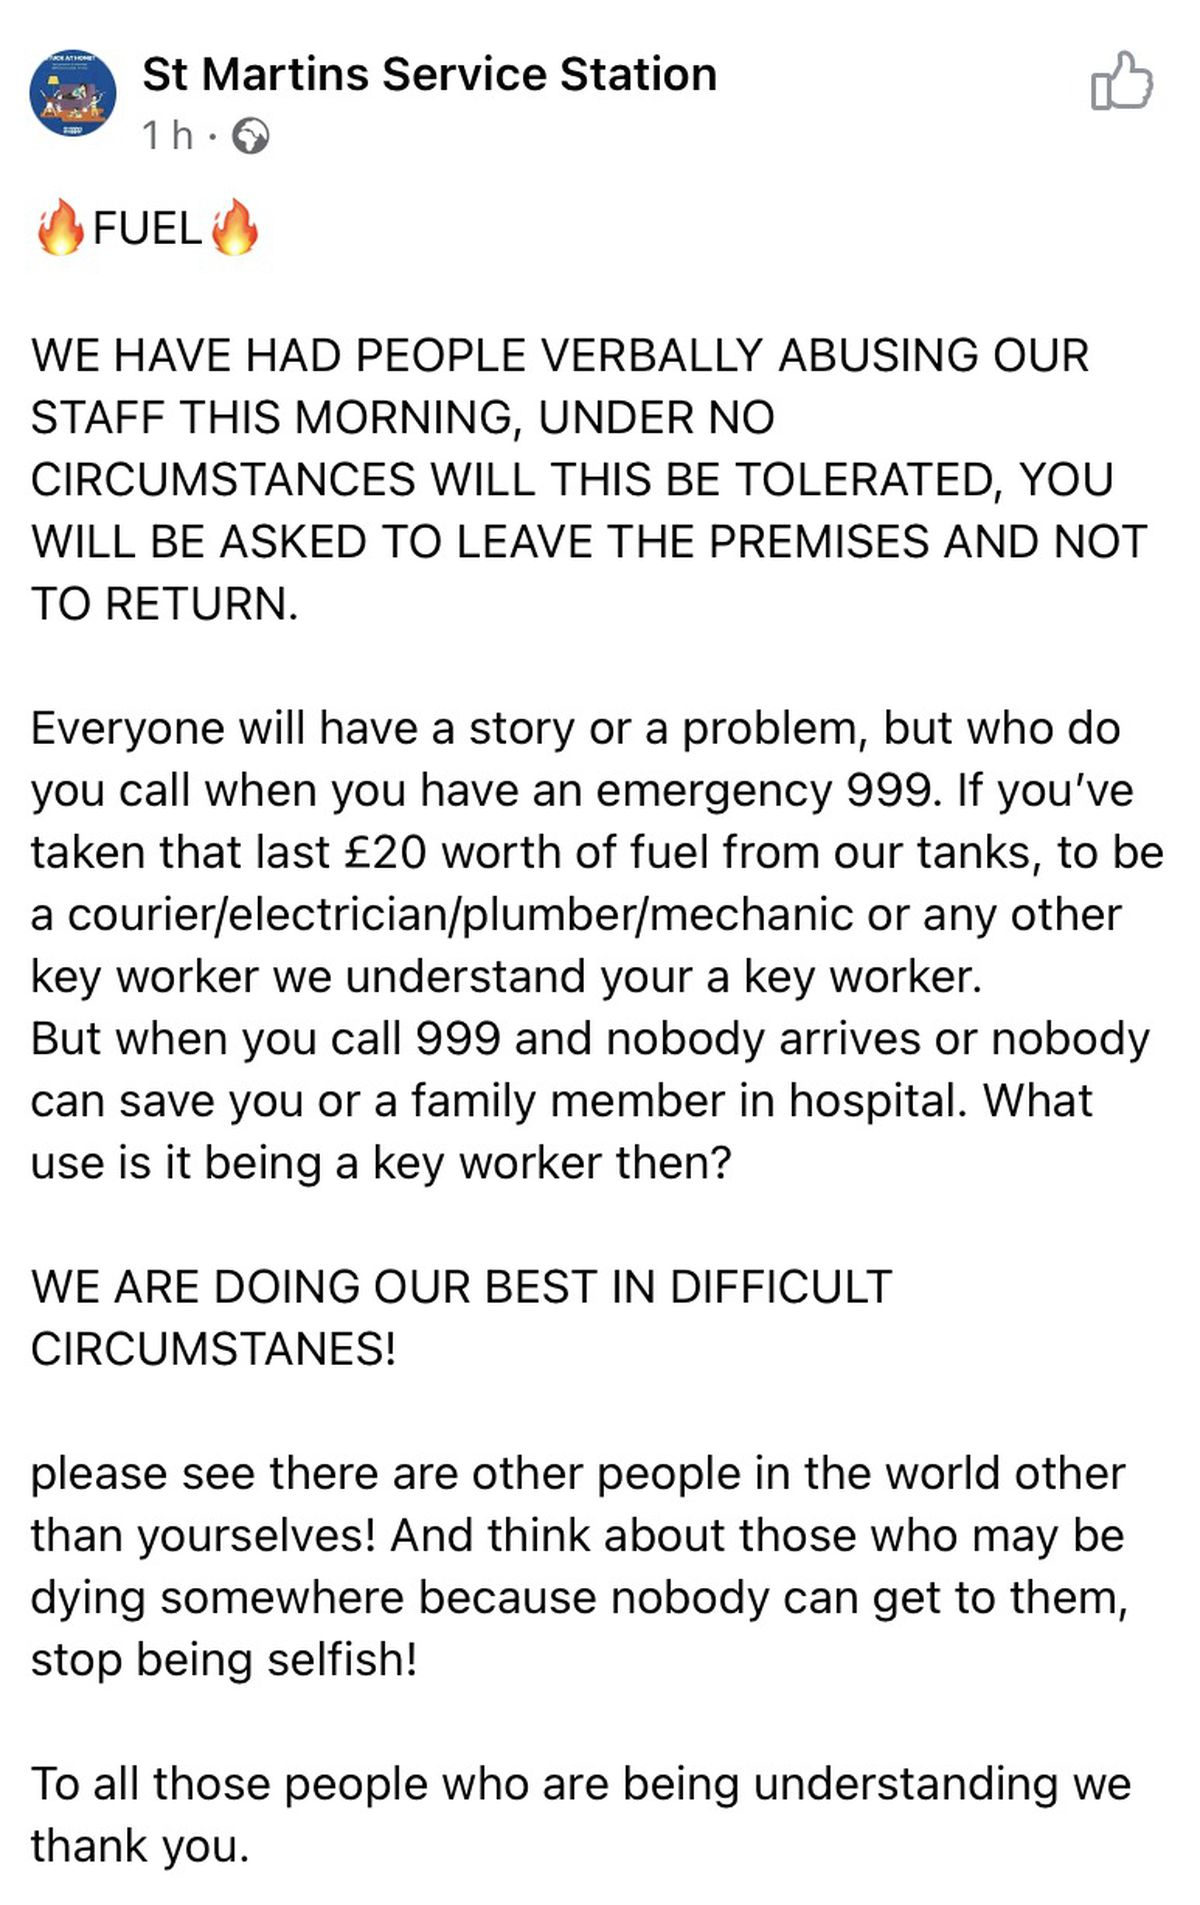 The message on Facebook about abuse directed at staff at St Martins Service Station